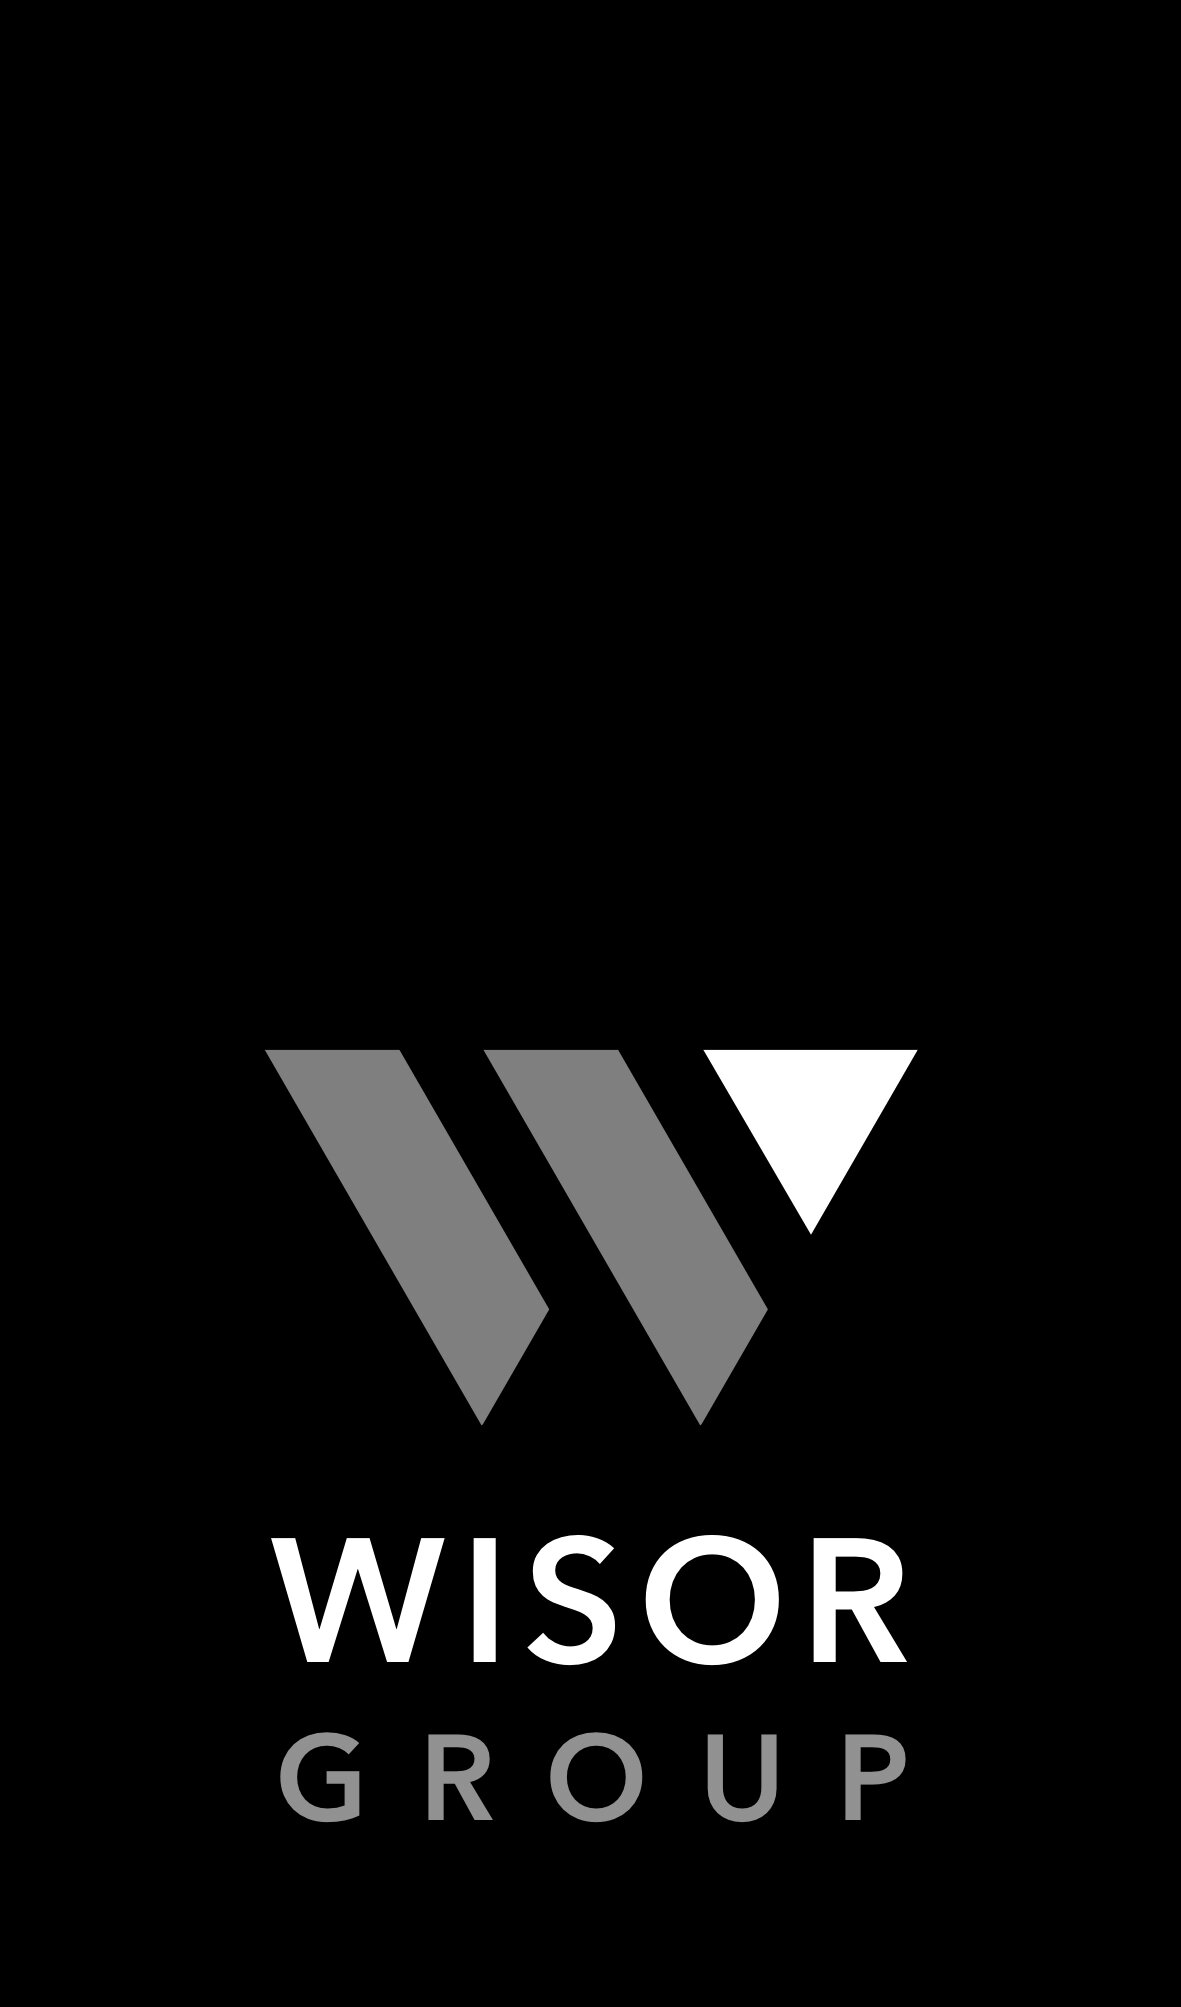 Wisor Group Document Logo.heic  For download click on image.